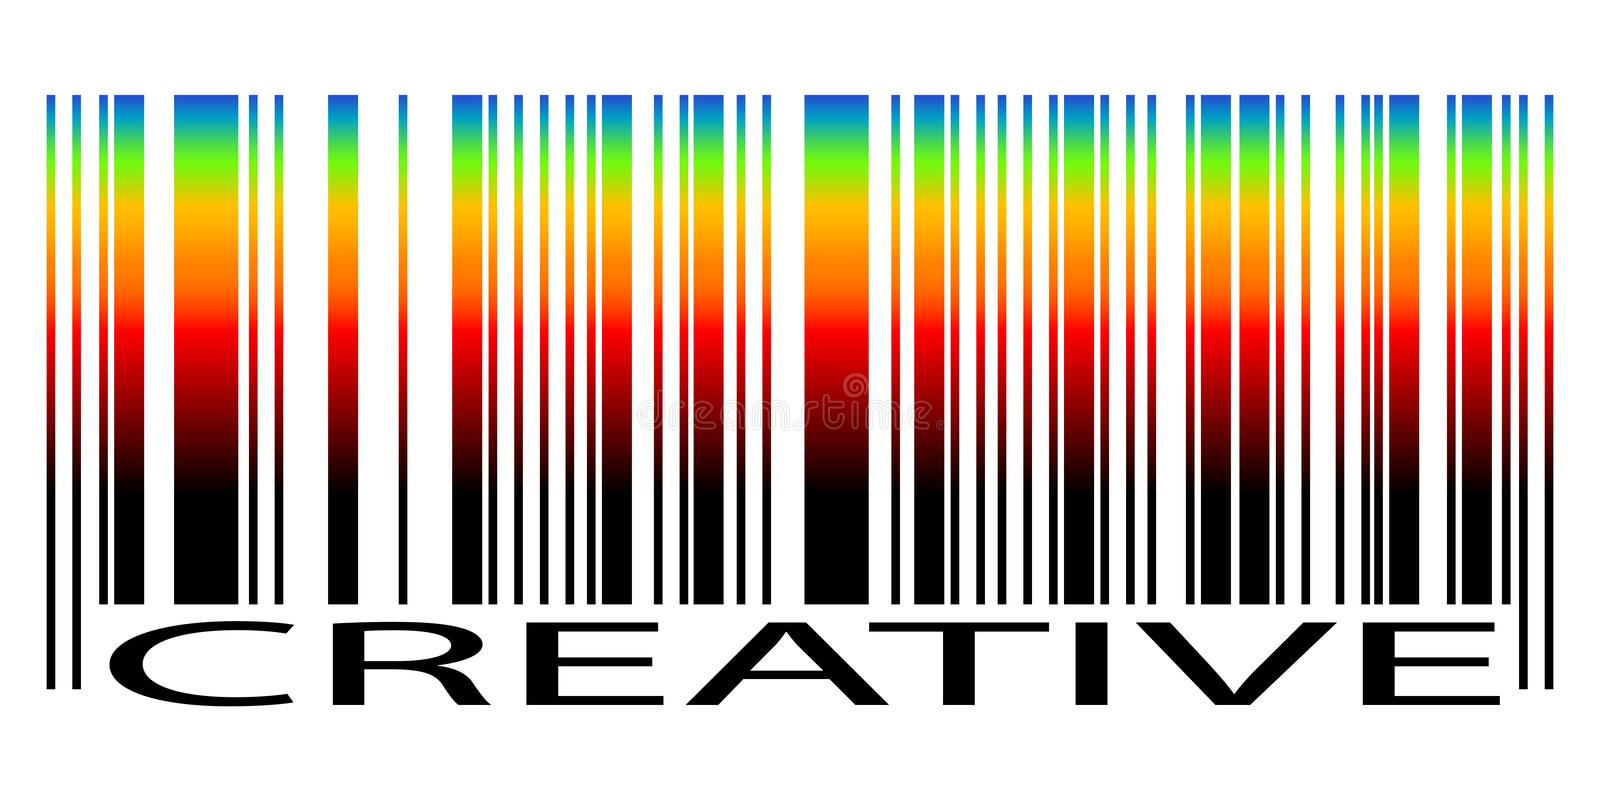 Bar code and text Creative royalty free illustration